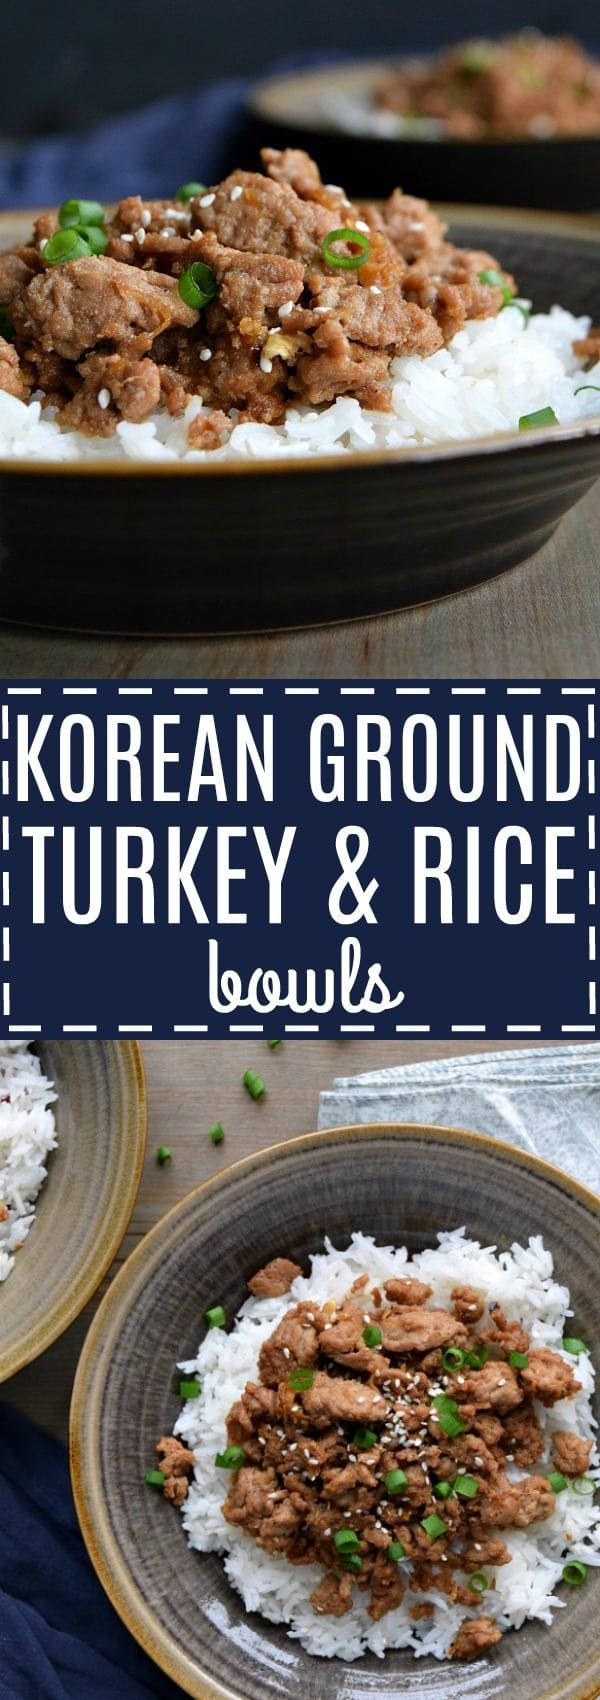 Korean Ground Turkey & Rice Bowls | The Schmidty Wife